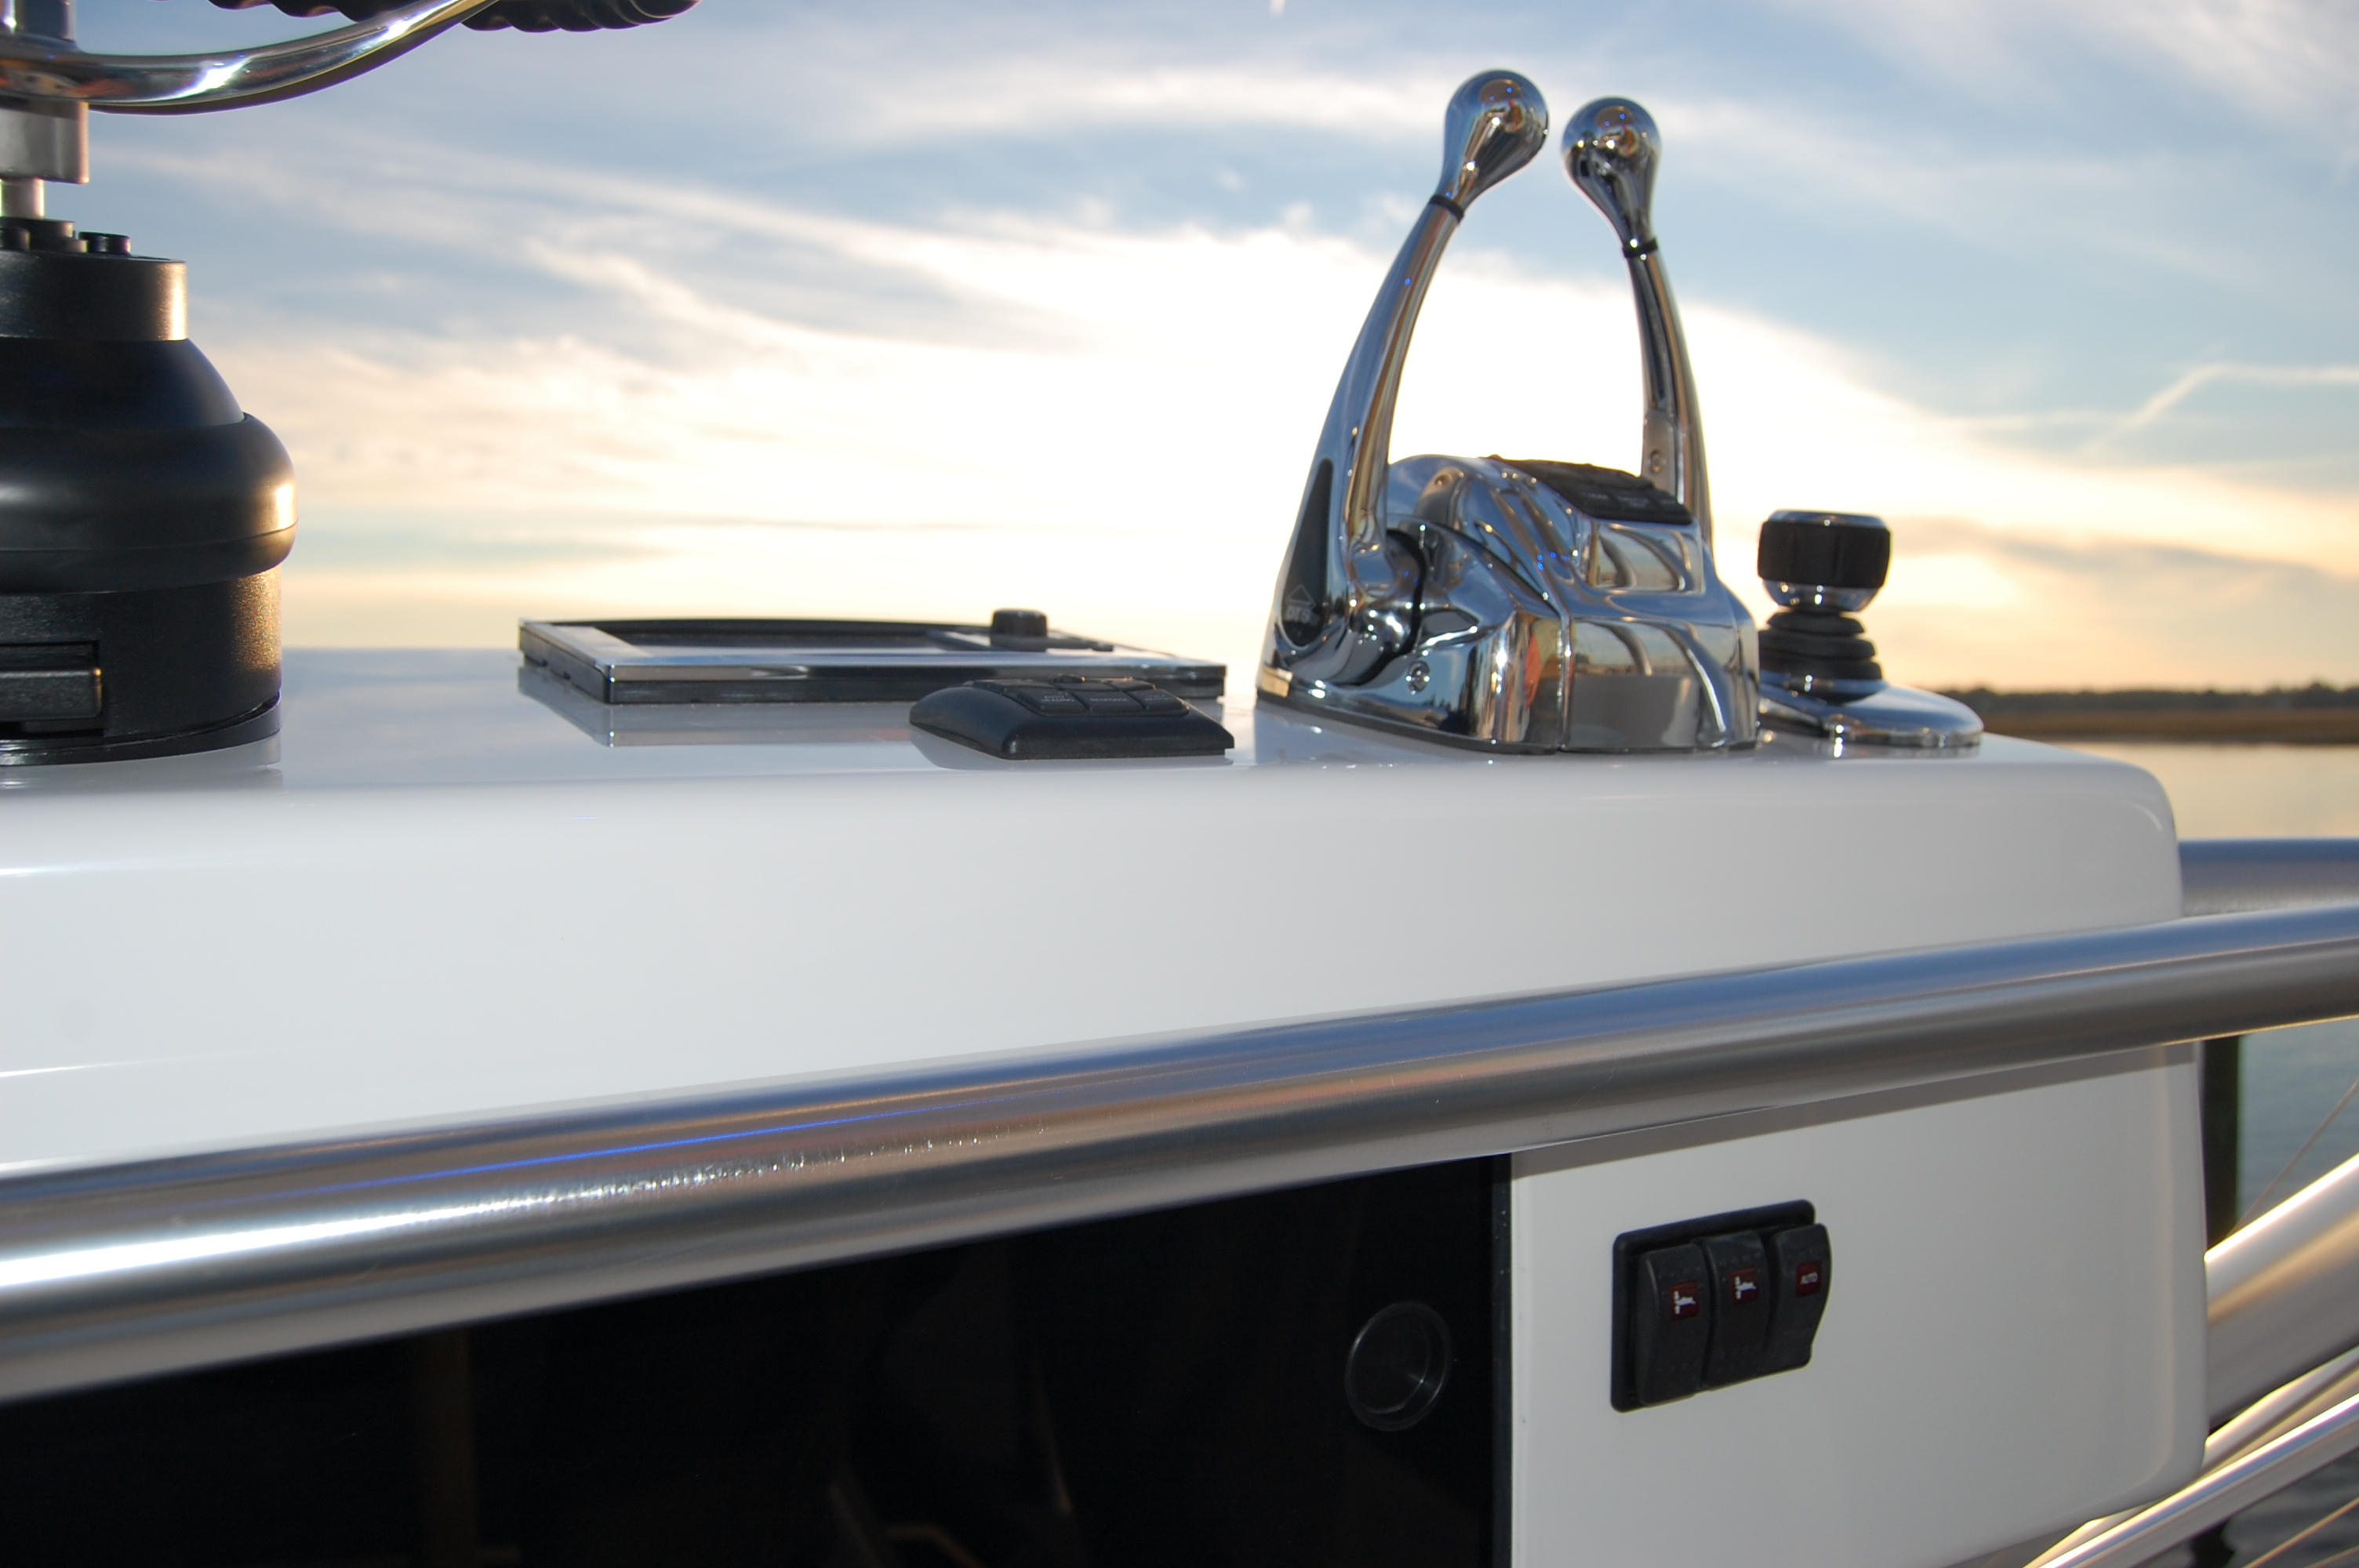 2015 Viking 42 Open, trim tab switches on tower